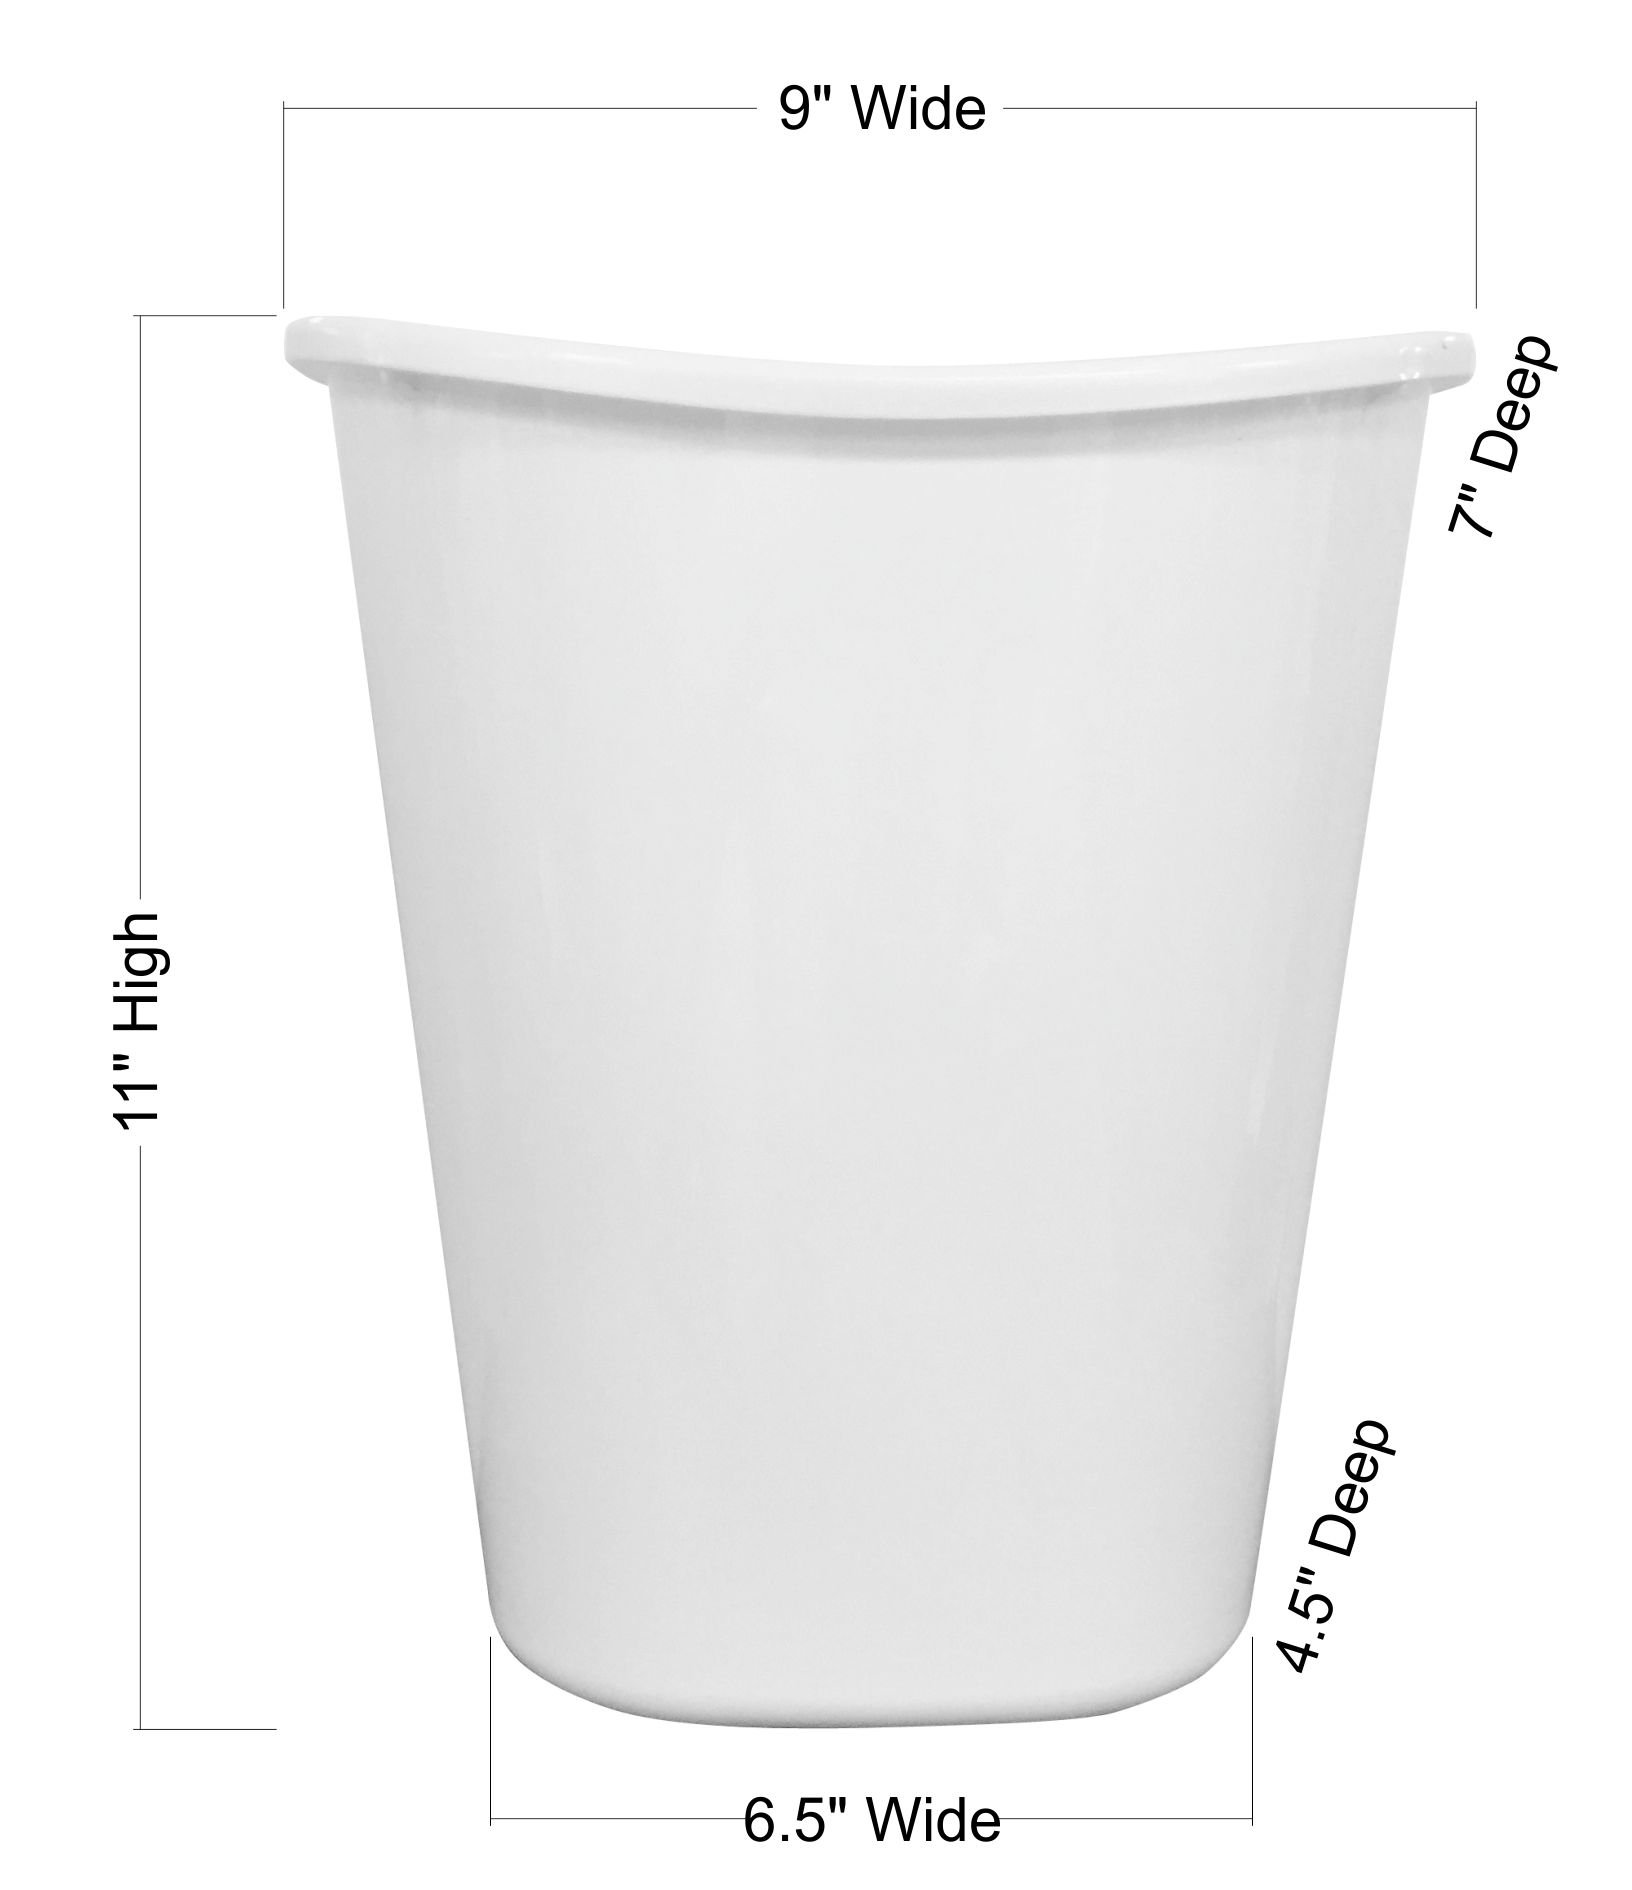 RNK Shops Easter Birdhouses Waste Basket - Double Sided (White) (Personalized) by RNK Shops (Image #3)